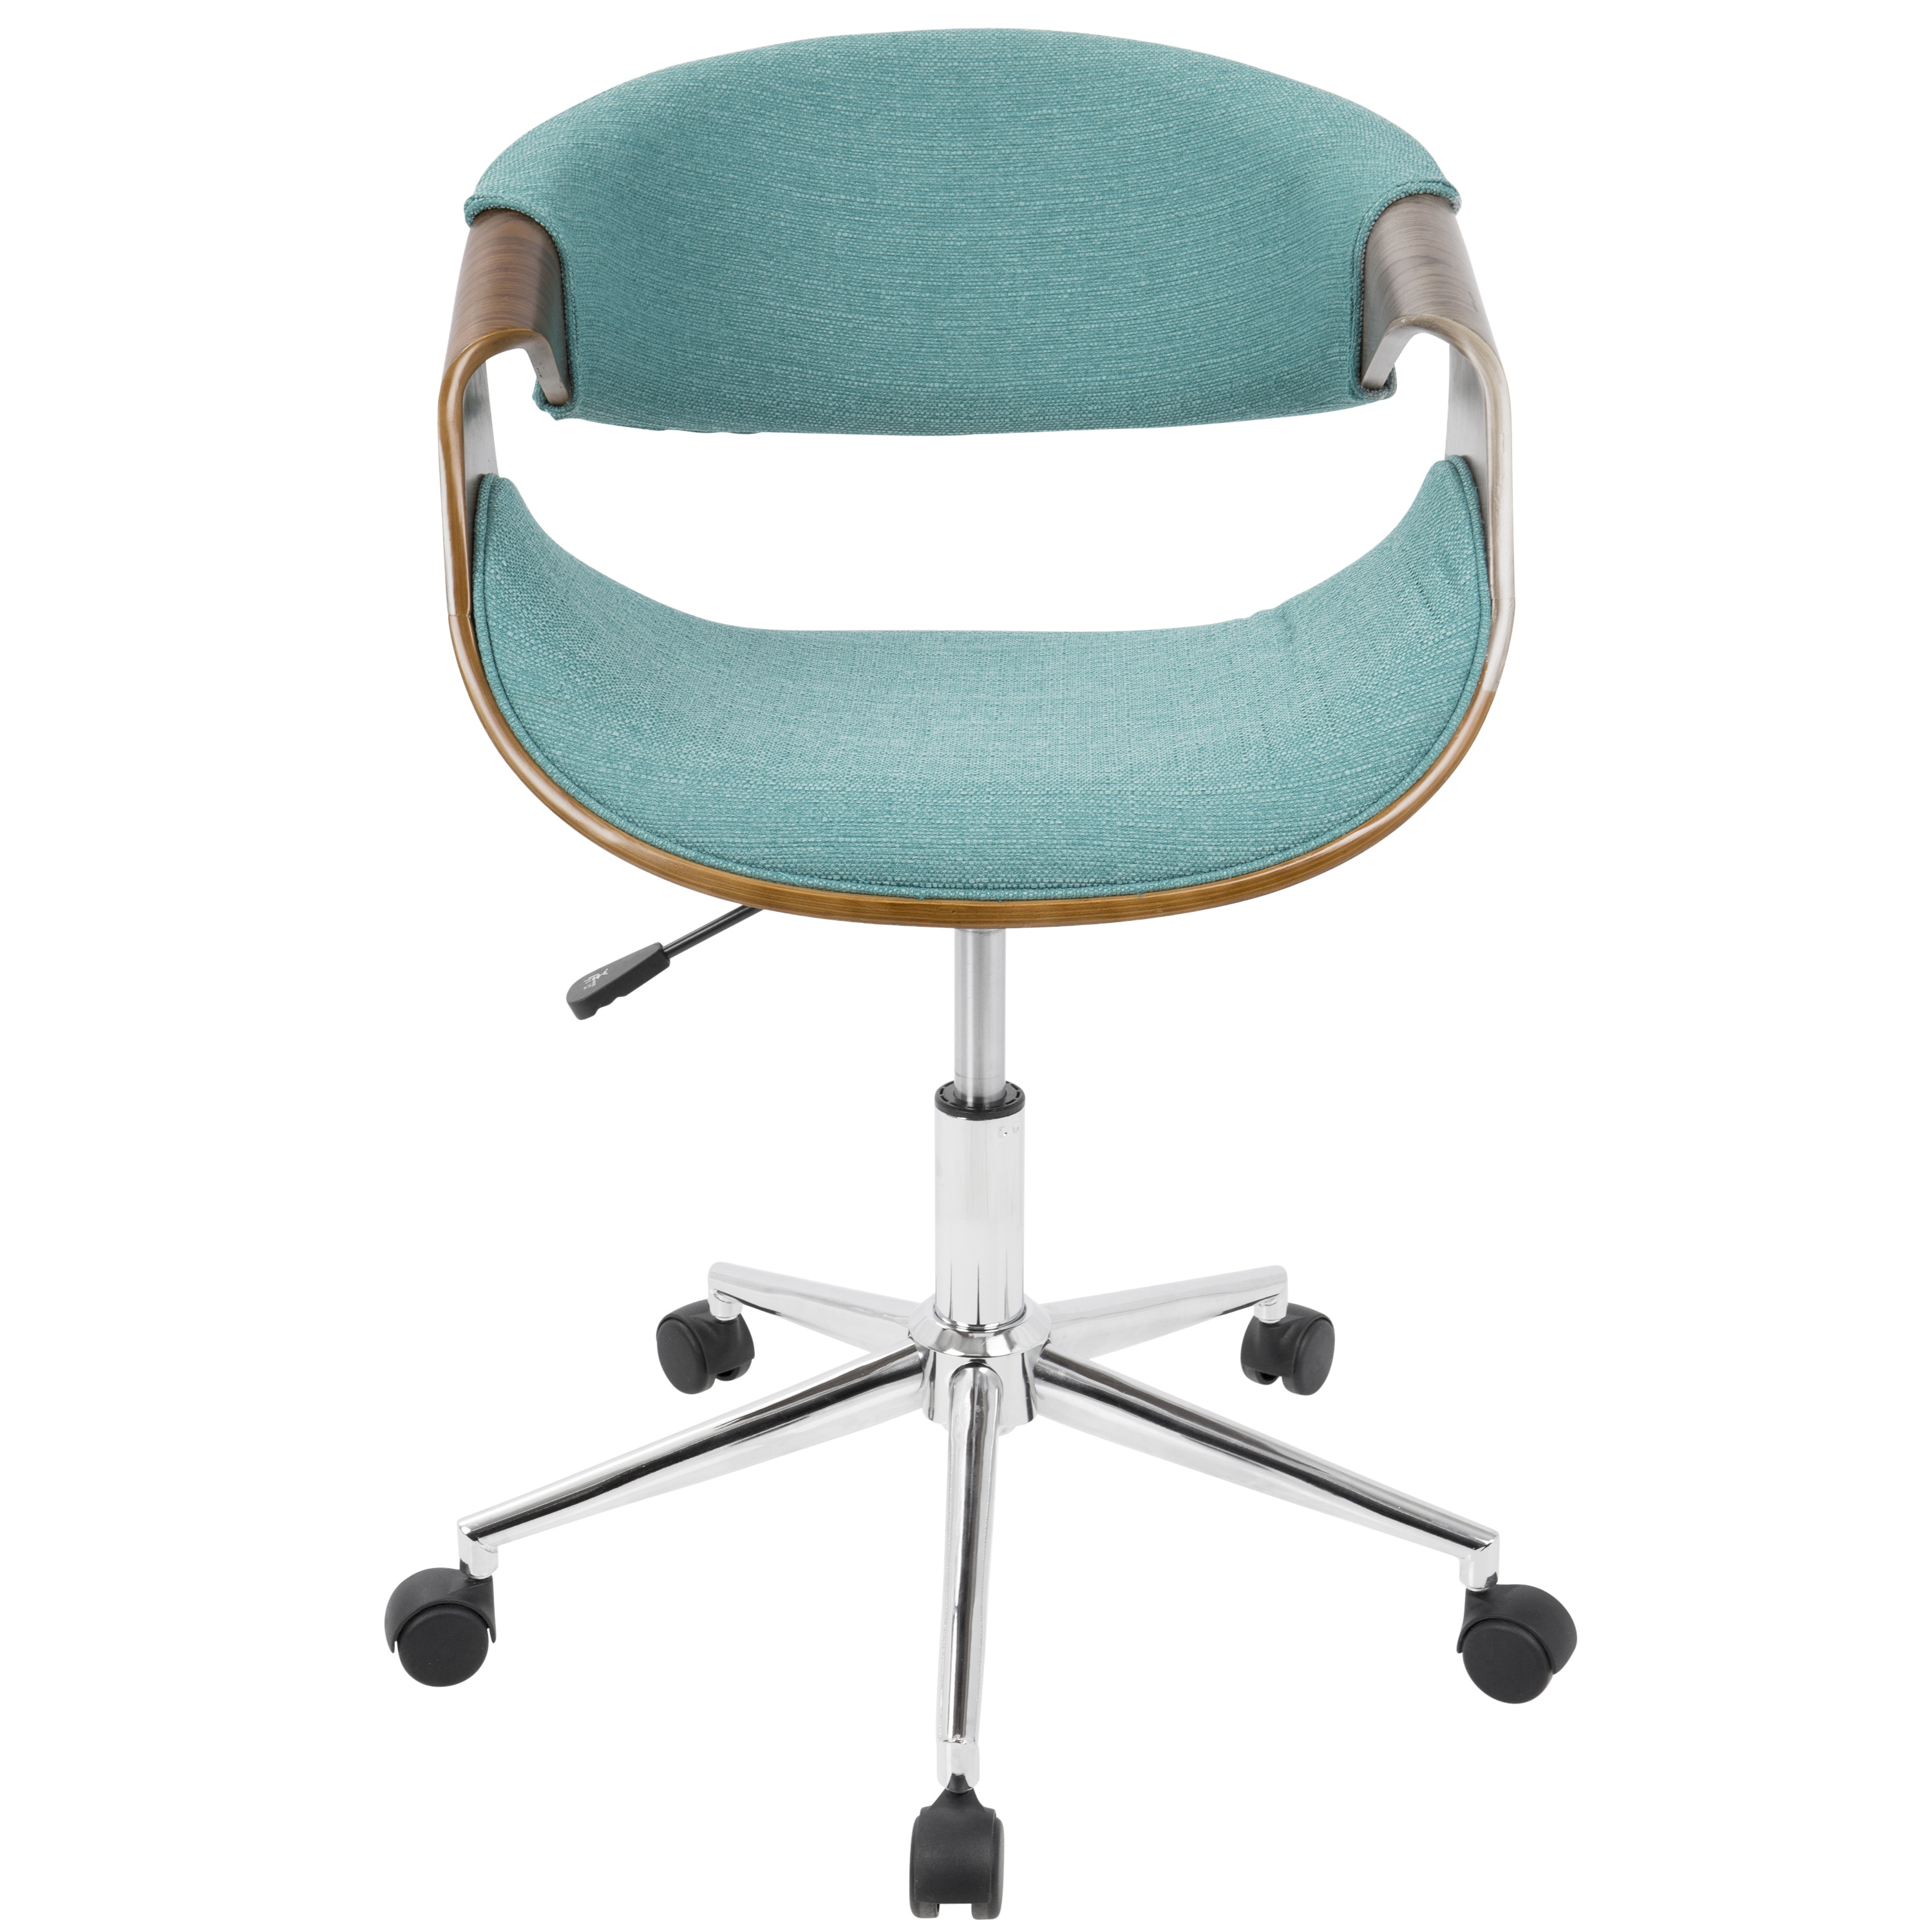 buy online bc613 d1dd7 Curvo Mid-Century Modern Office Chair in Walnut Wood and Woven Fabric